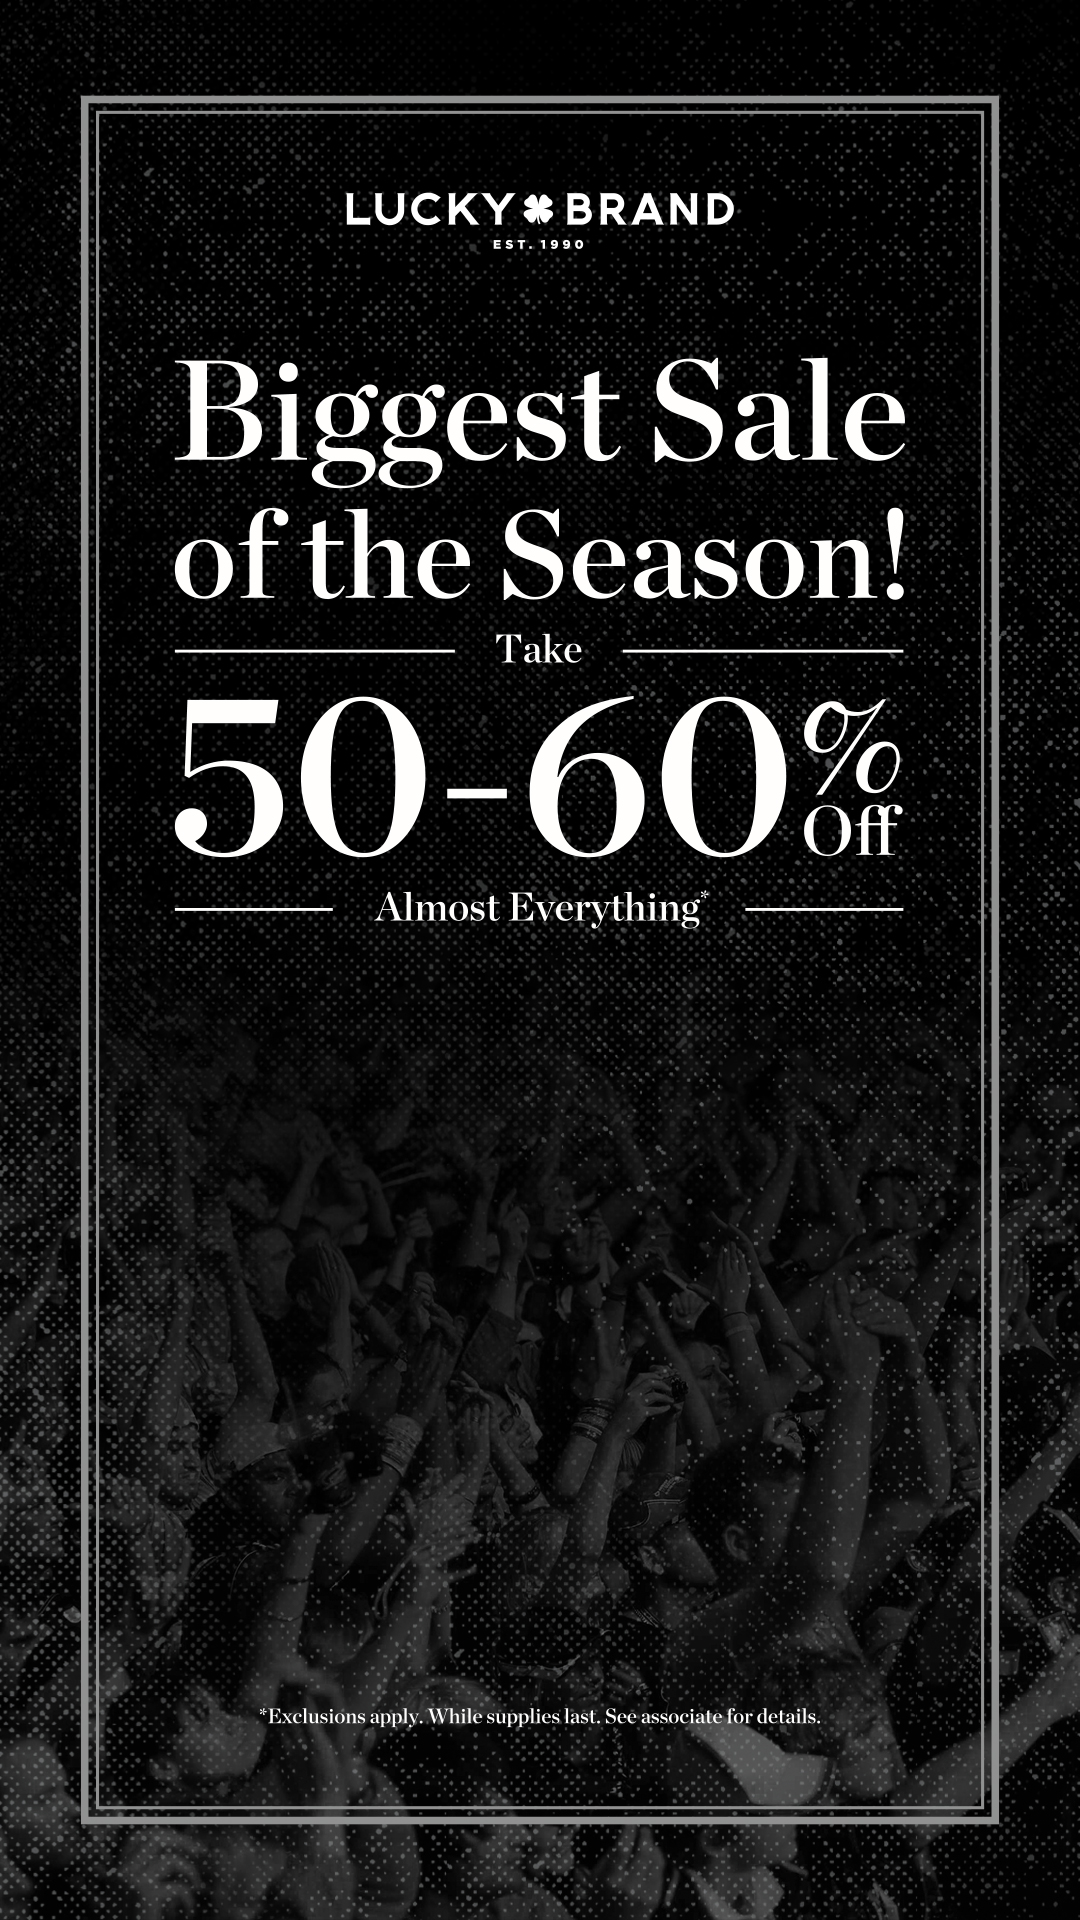 50-60% Off Almost Everything!